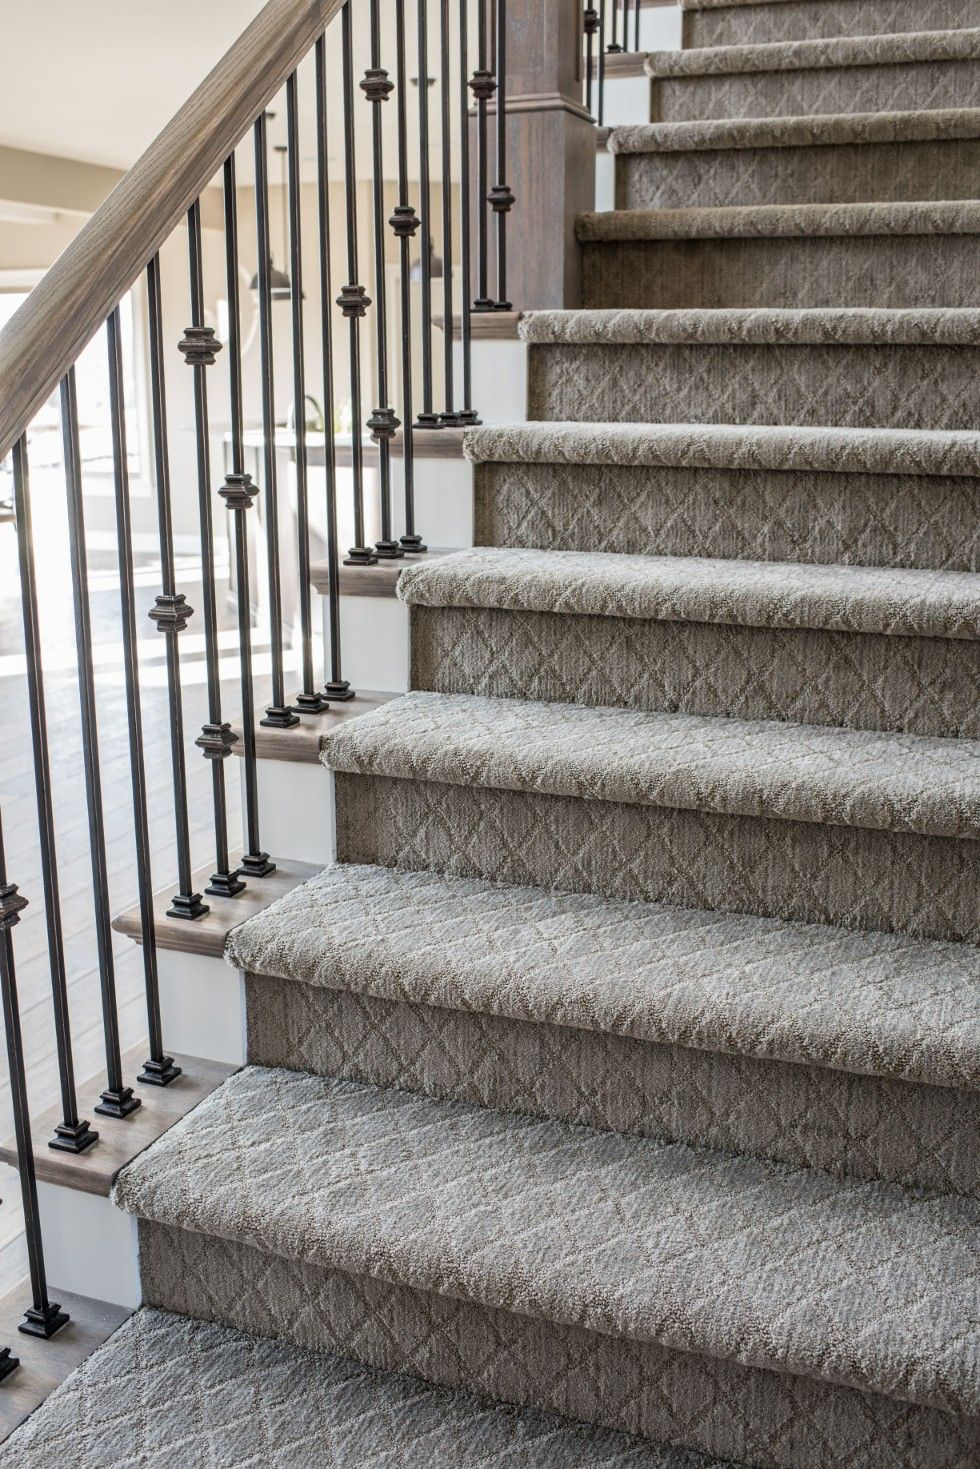 Jpd Oldhawthrone Websize 004 Min Jpg With Images Carpet | Textured Carpet On Stairs | Floral | Wide Stripe | Short Cut Pile | Stylish | Brown